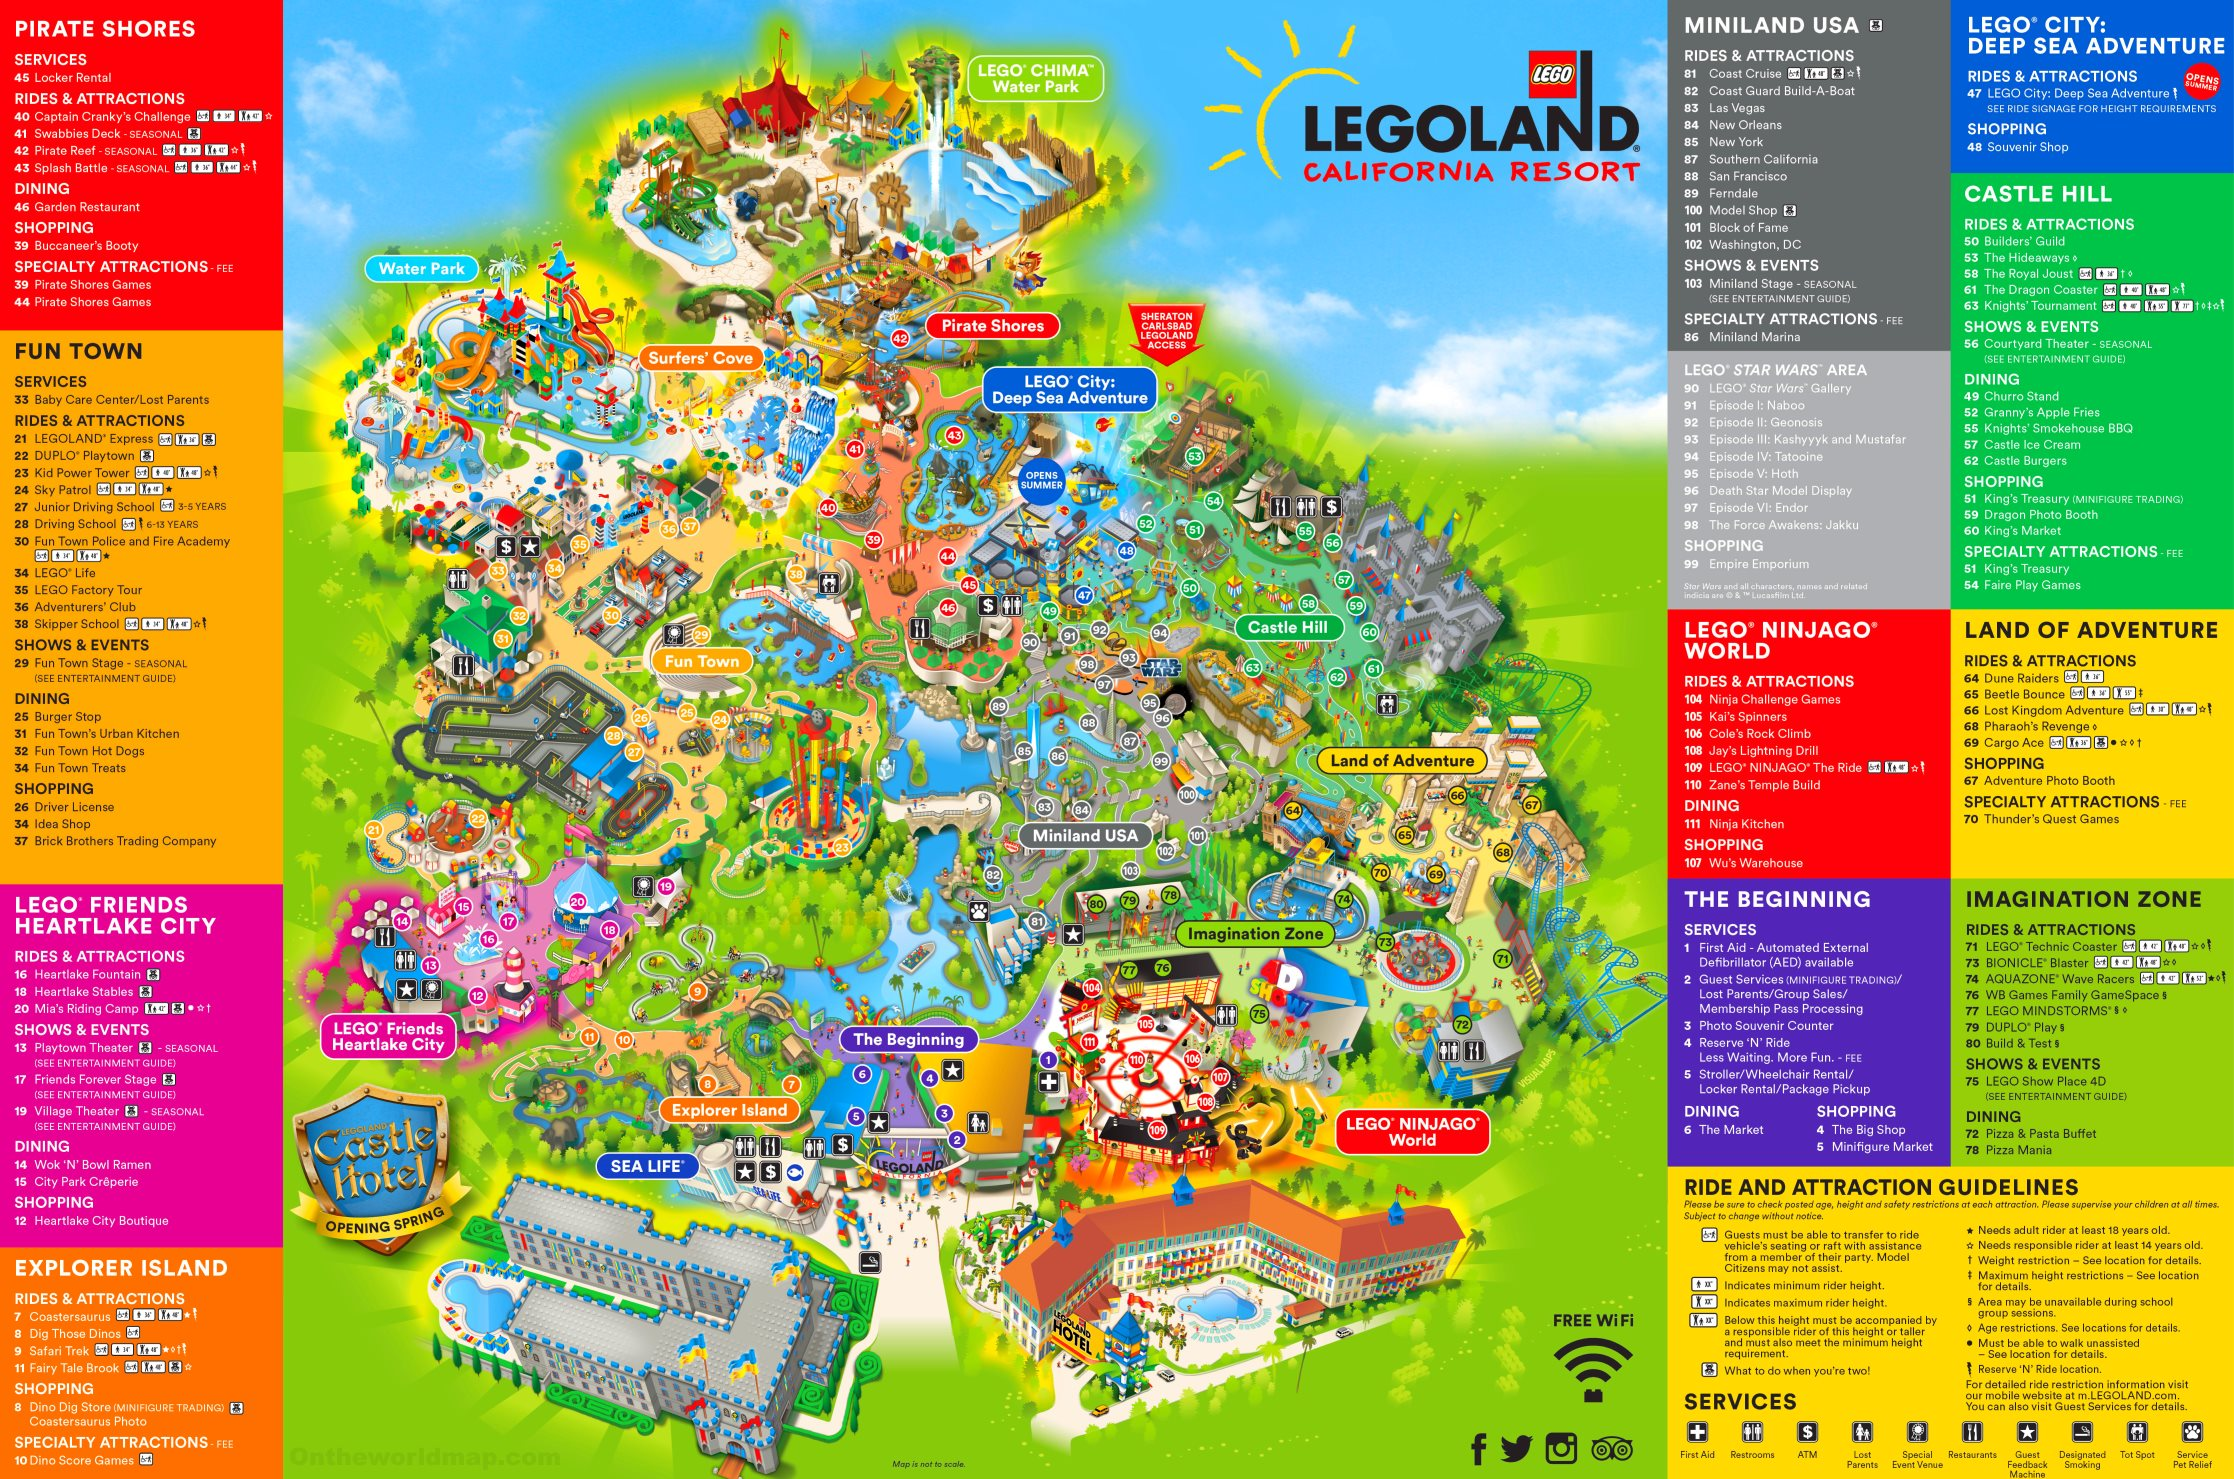 legoland-california-map Map Of Arkansas Cities on map of eureka springs, map of springdale, map of jonesboro, map florida cities, map illinois cities, map texas cities, ar map with cities, map of russellville, map of fayetteville, map mississippi cities, map of arizona state, kansas map with all cities, map kentucky cities, map of west memphis, map of conway, map of van buren, map california cities, map of dardanelle, map of mountain home, map louisiana cities,